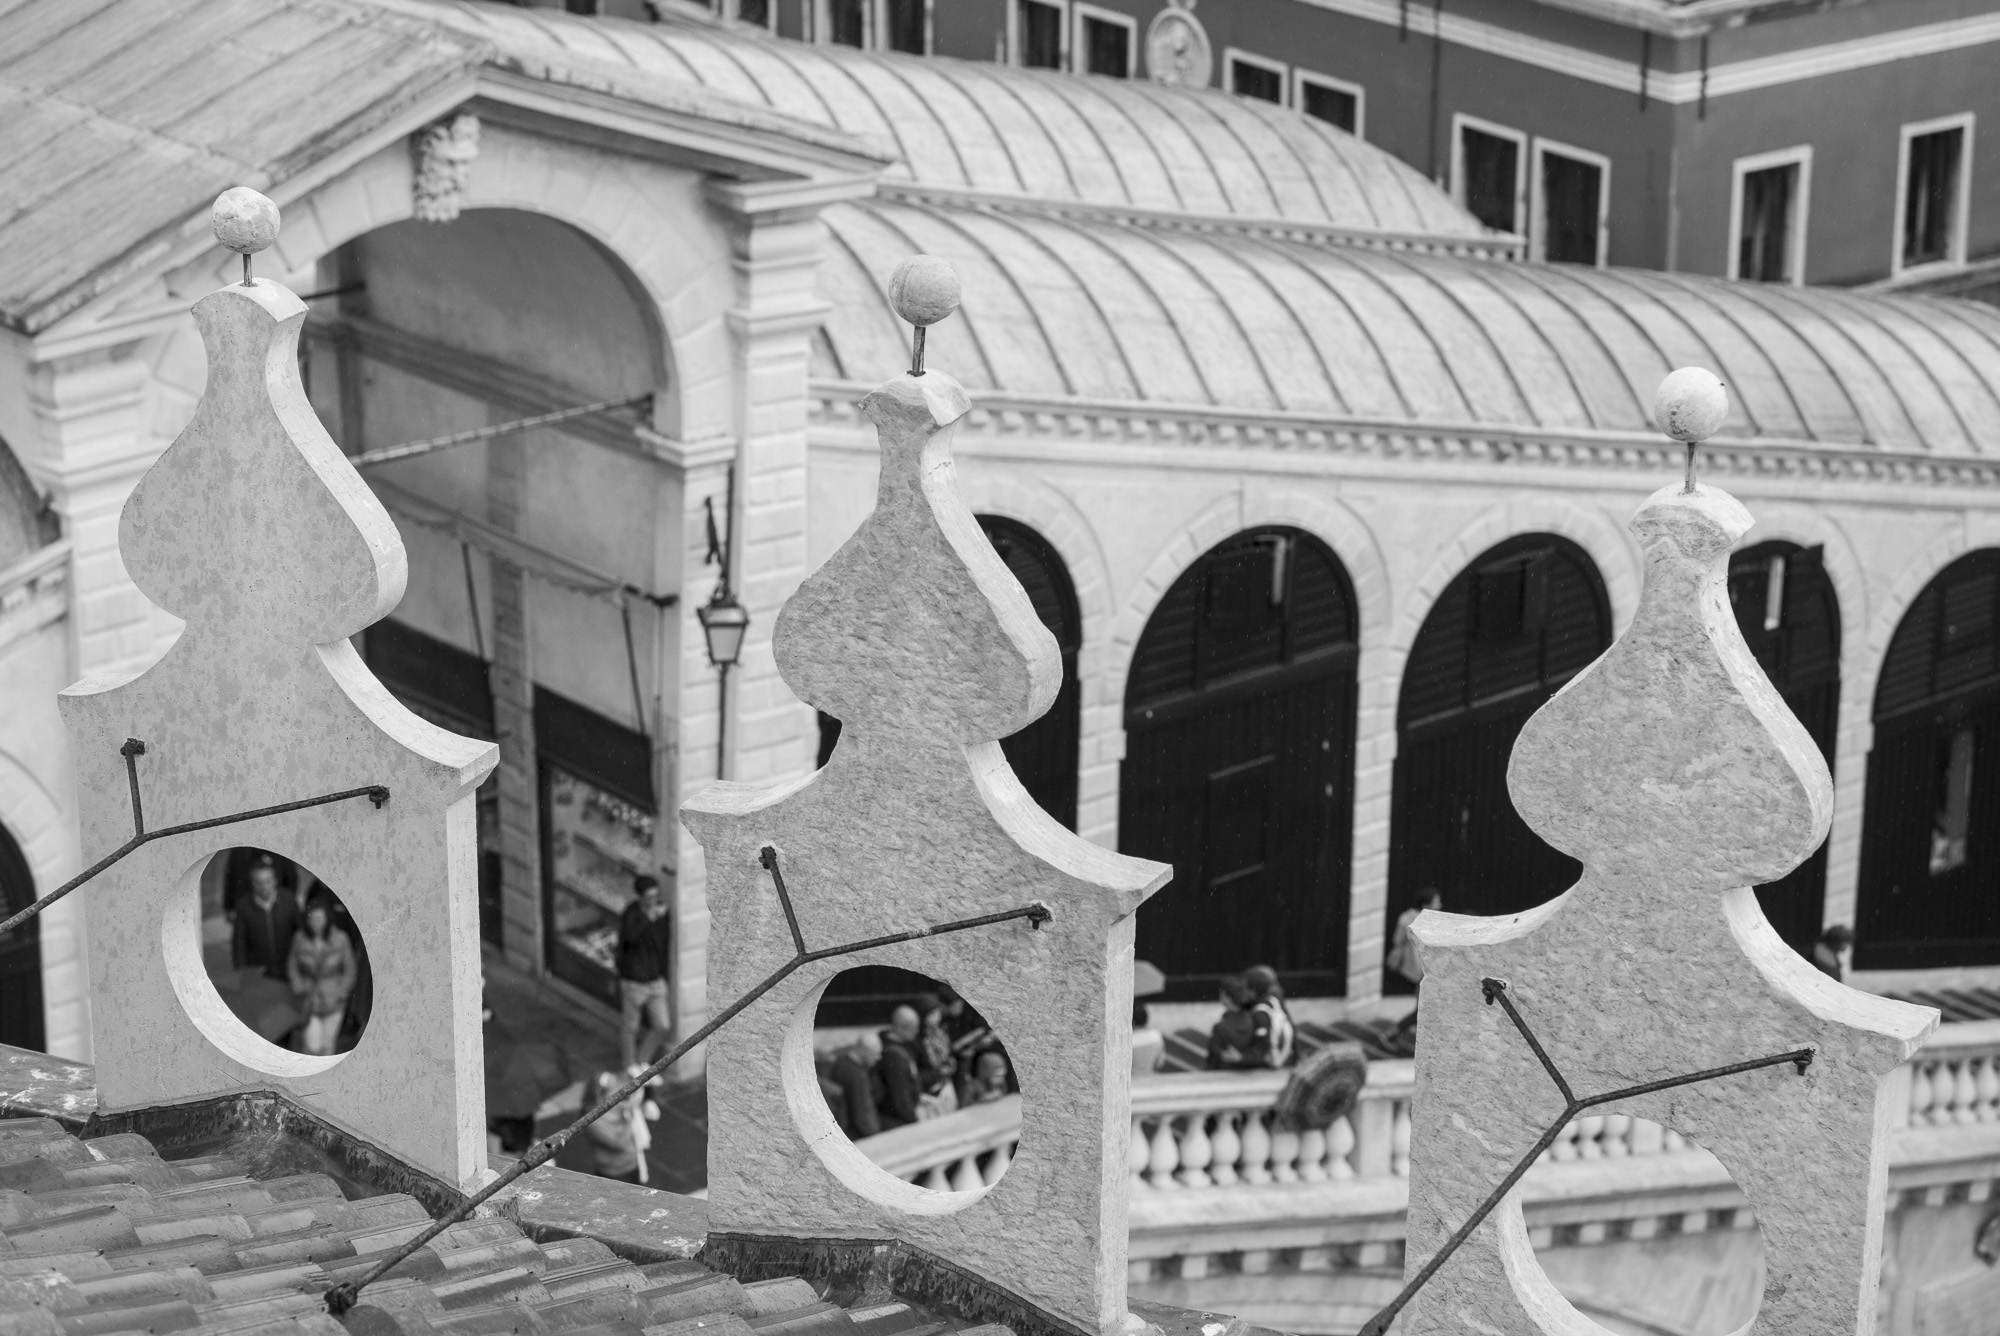 Rialto Bridge from the rooftop